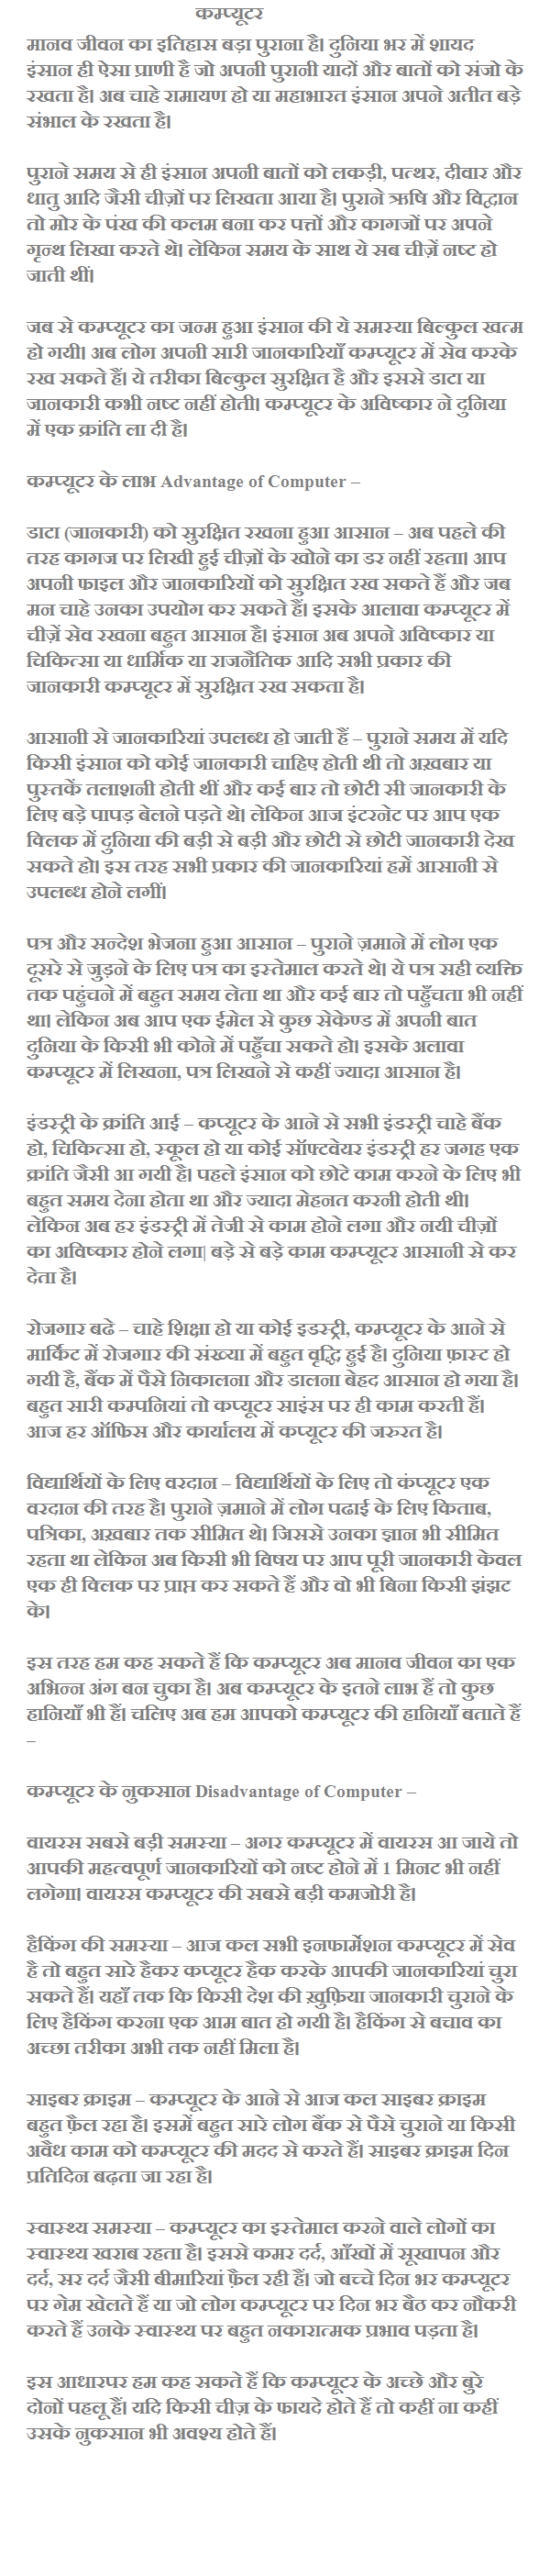 Essay in Hindi on Computer